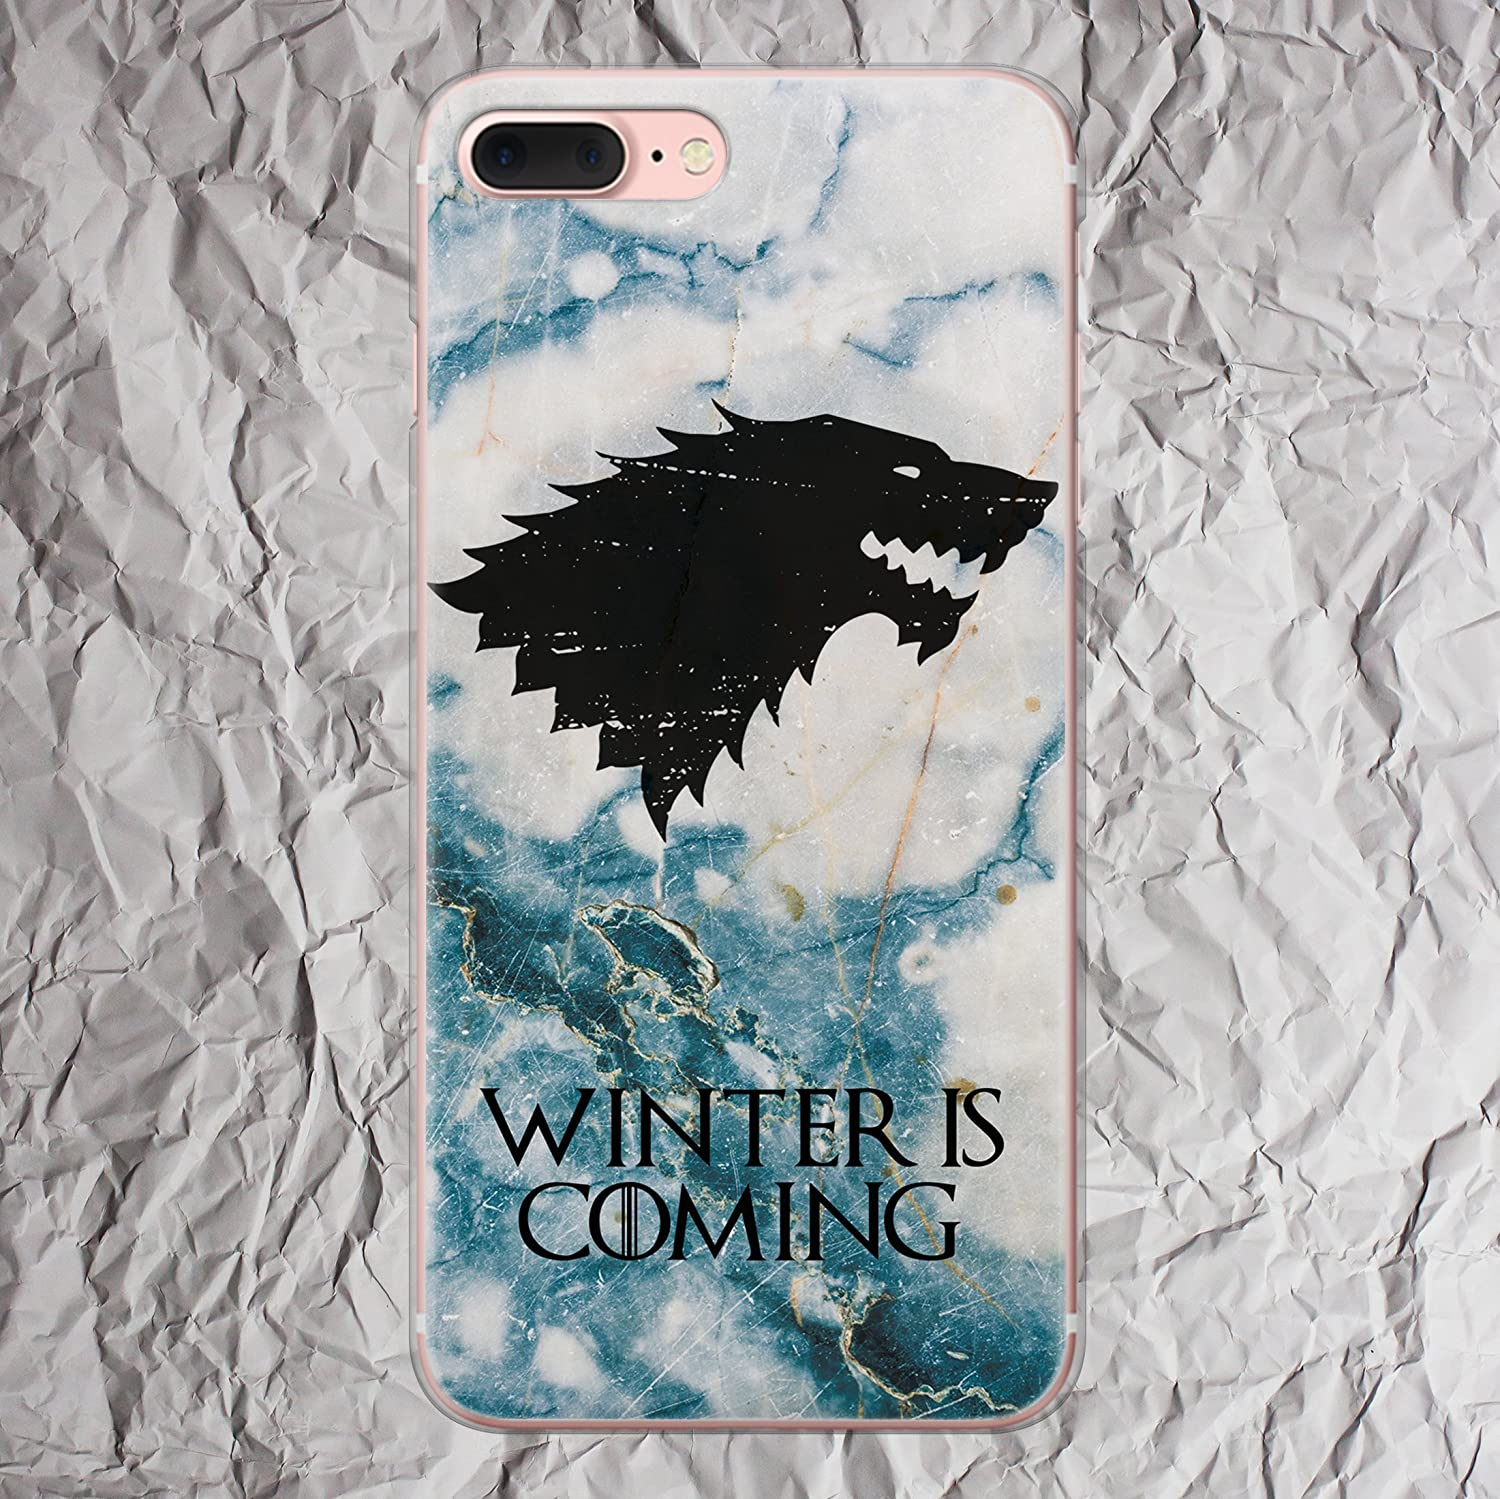 Game of Thrones mug case House Stark Winter is Coming t-shirt iPhone X 8 7 6s 6 Plus se 5se 5 5s 5c 4s 4 Case Gifts design for Cell i Phone Cover